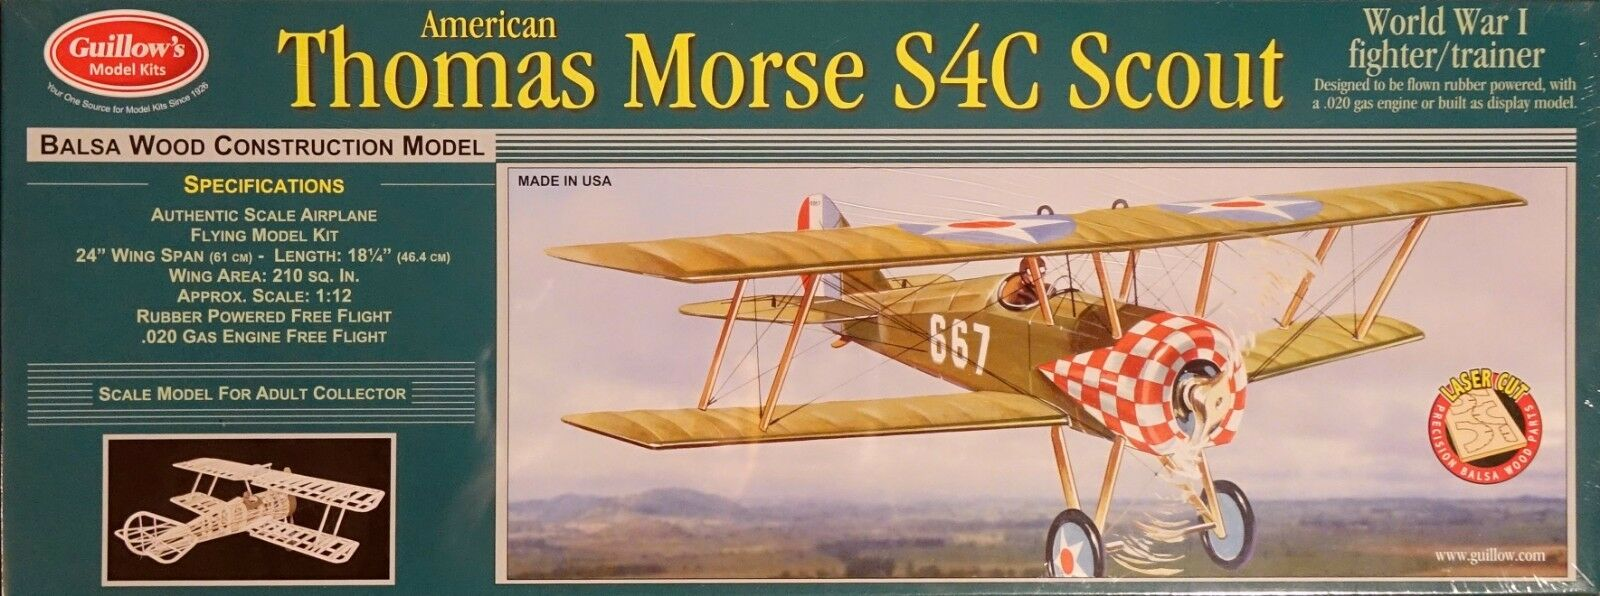 Guillow's Thomas Morse Scout 24  Laser Cut Scale Rubber Powered Flying Model 201